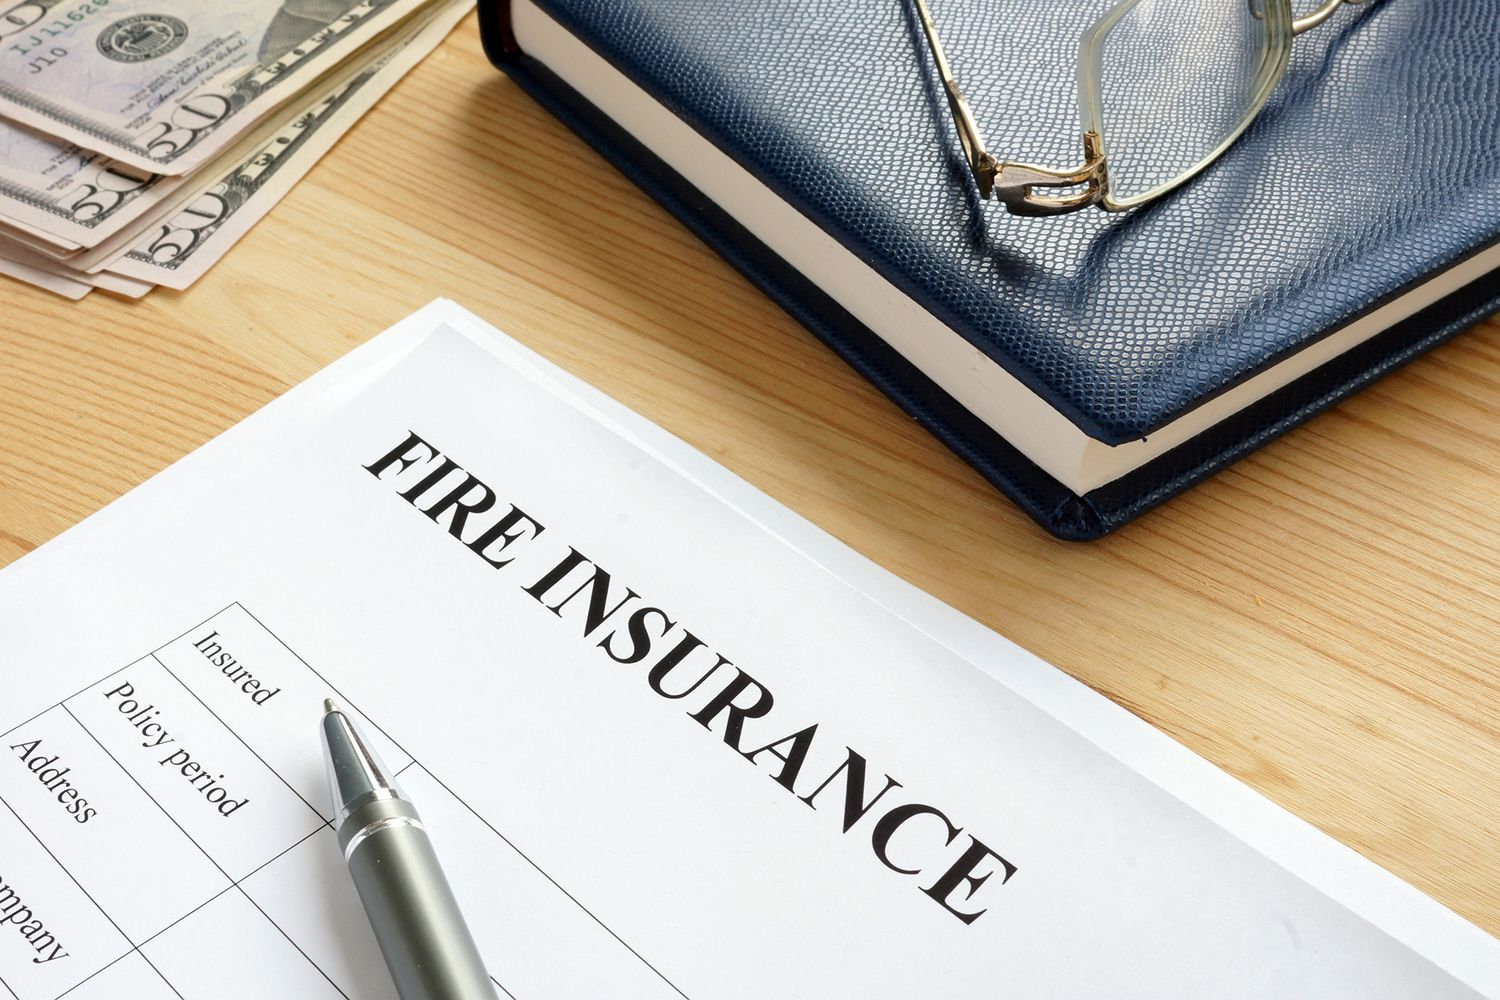 Choosing a property and fire insurance company